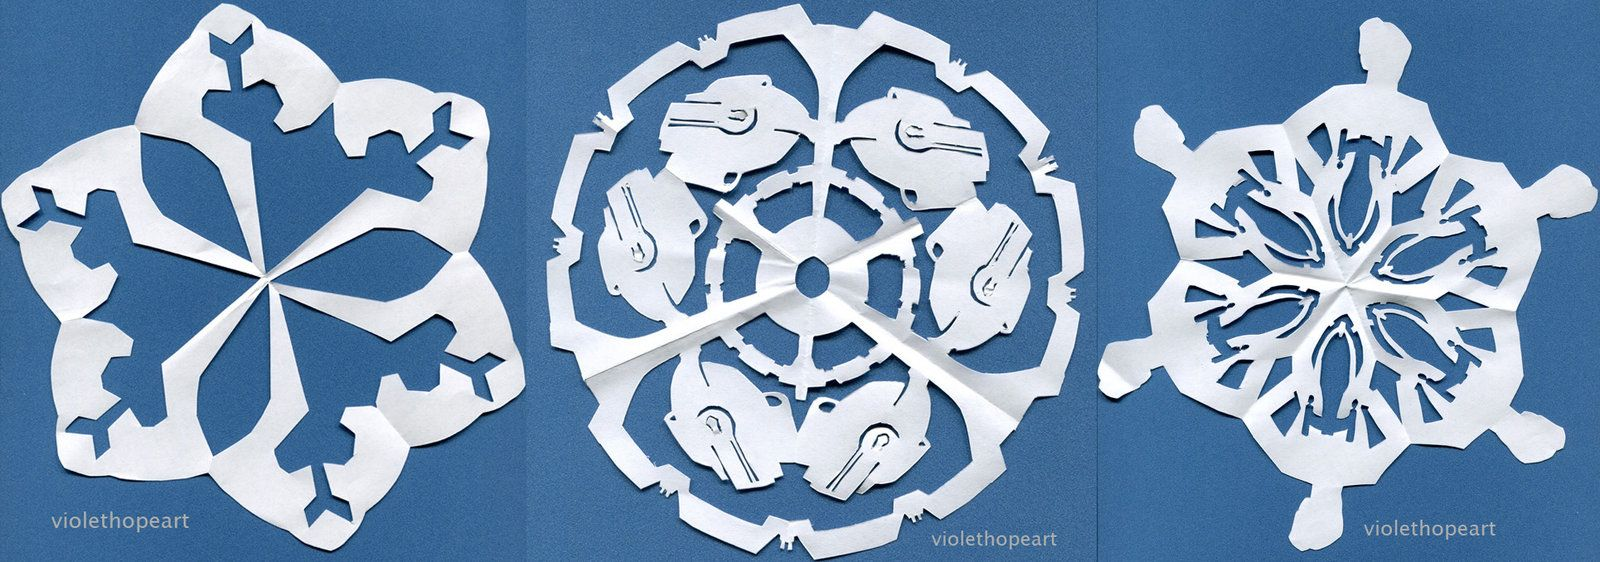 Star Trek Snowflakes By Violethopeart On Deviantart Snowflakes